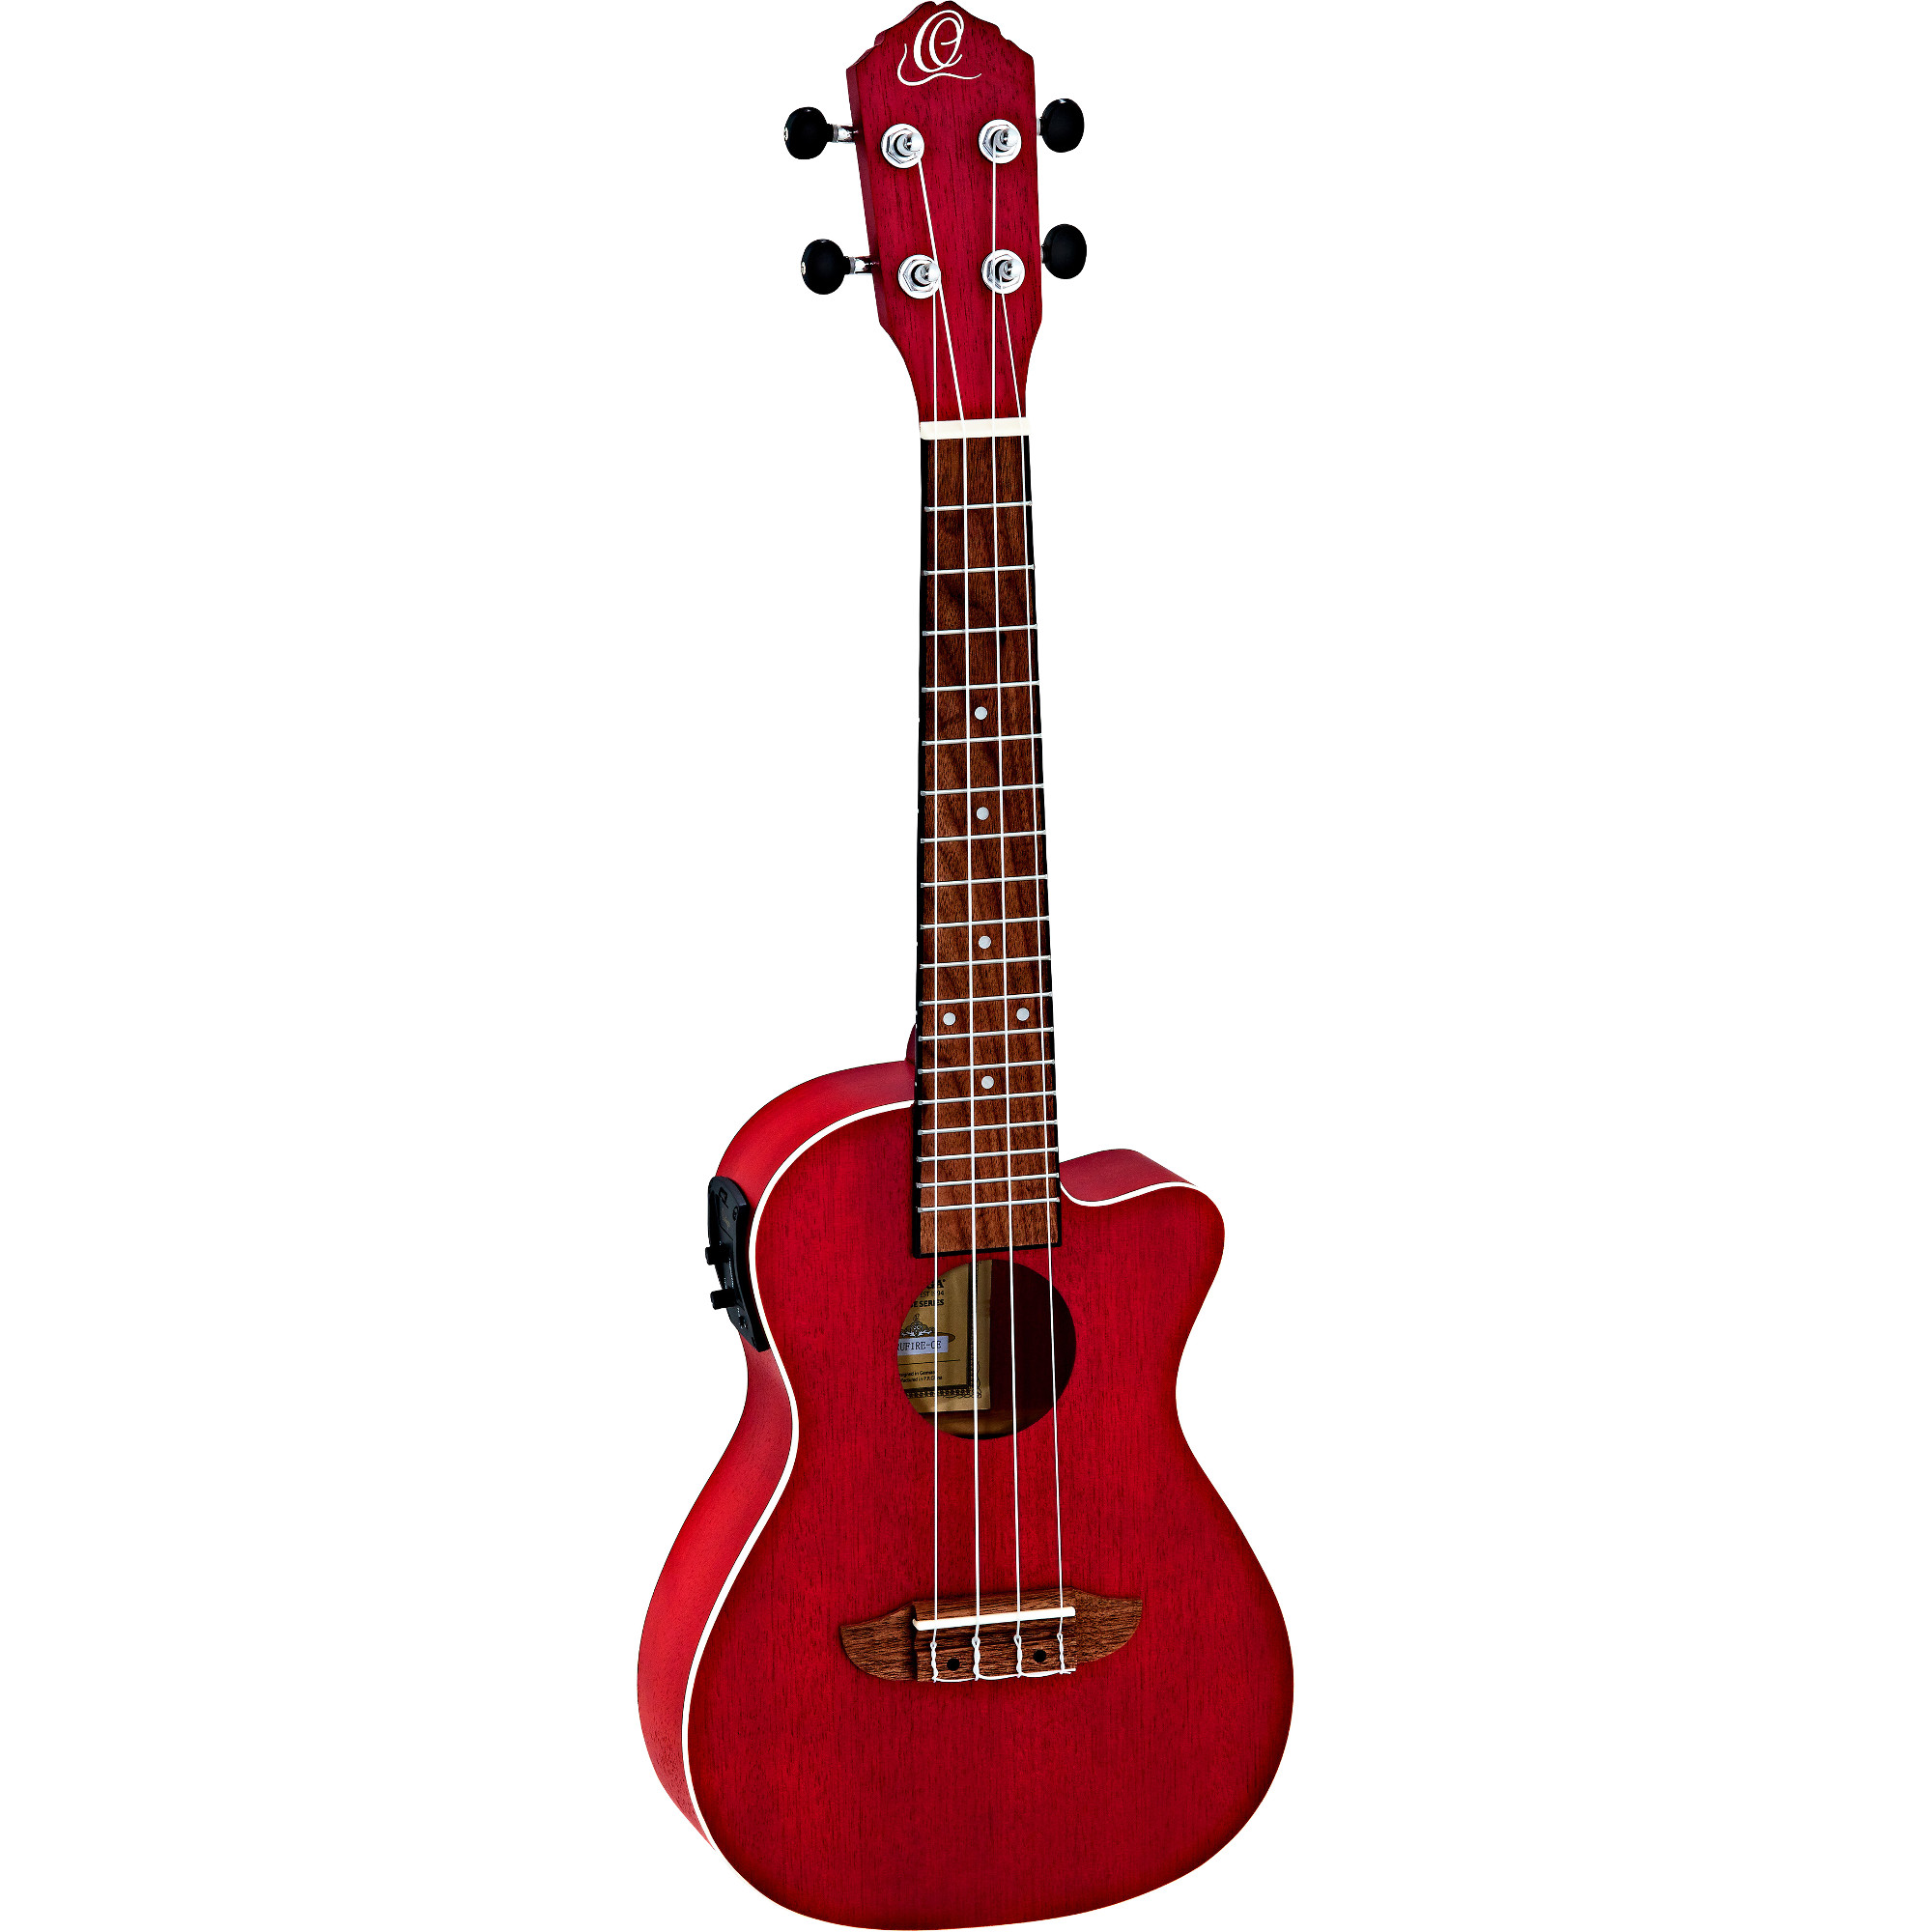 Ortega Earth Series RUFIRE CE concert ukulele, red